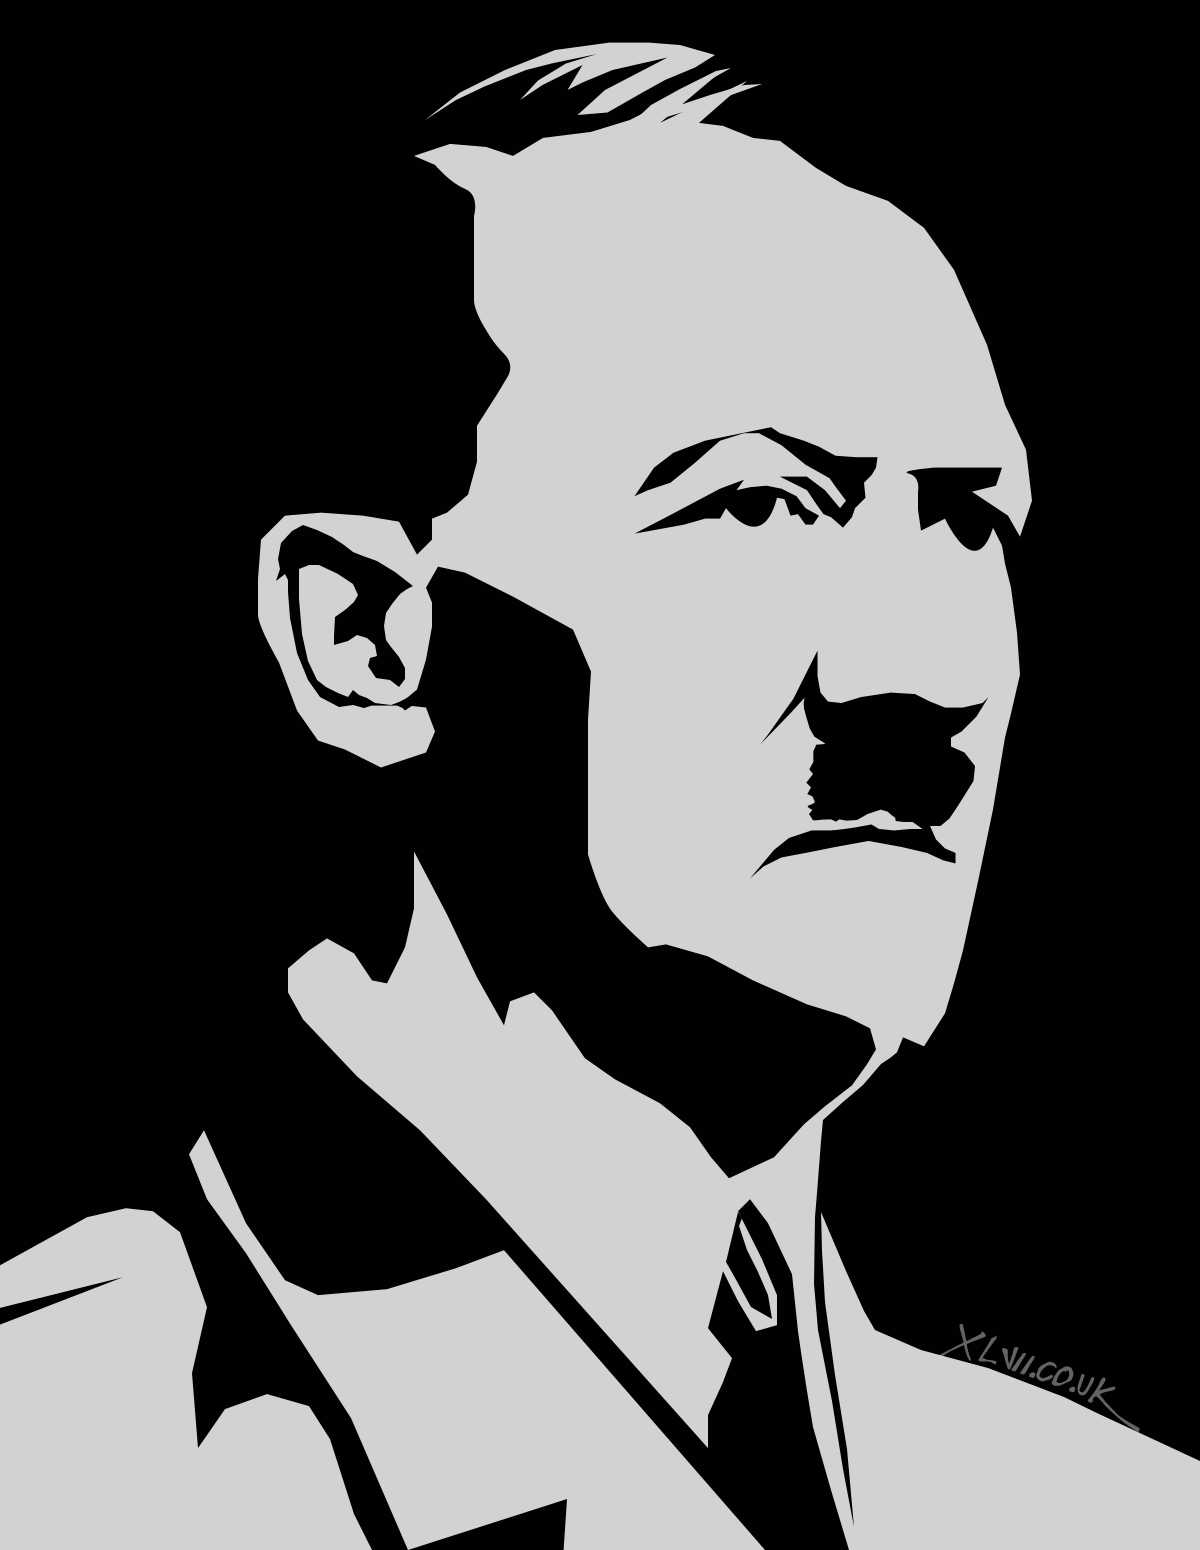 adolf hitler outline Adolf hitler (20 april 1889 -30 april 1945) was an austrian-born german politician and the leader of the nazi party hitler was chancellor of germany from 1933 to.